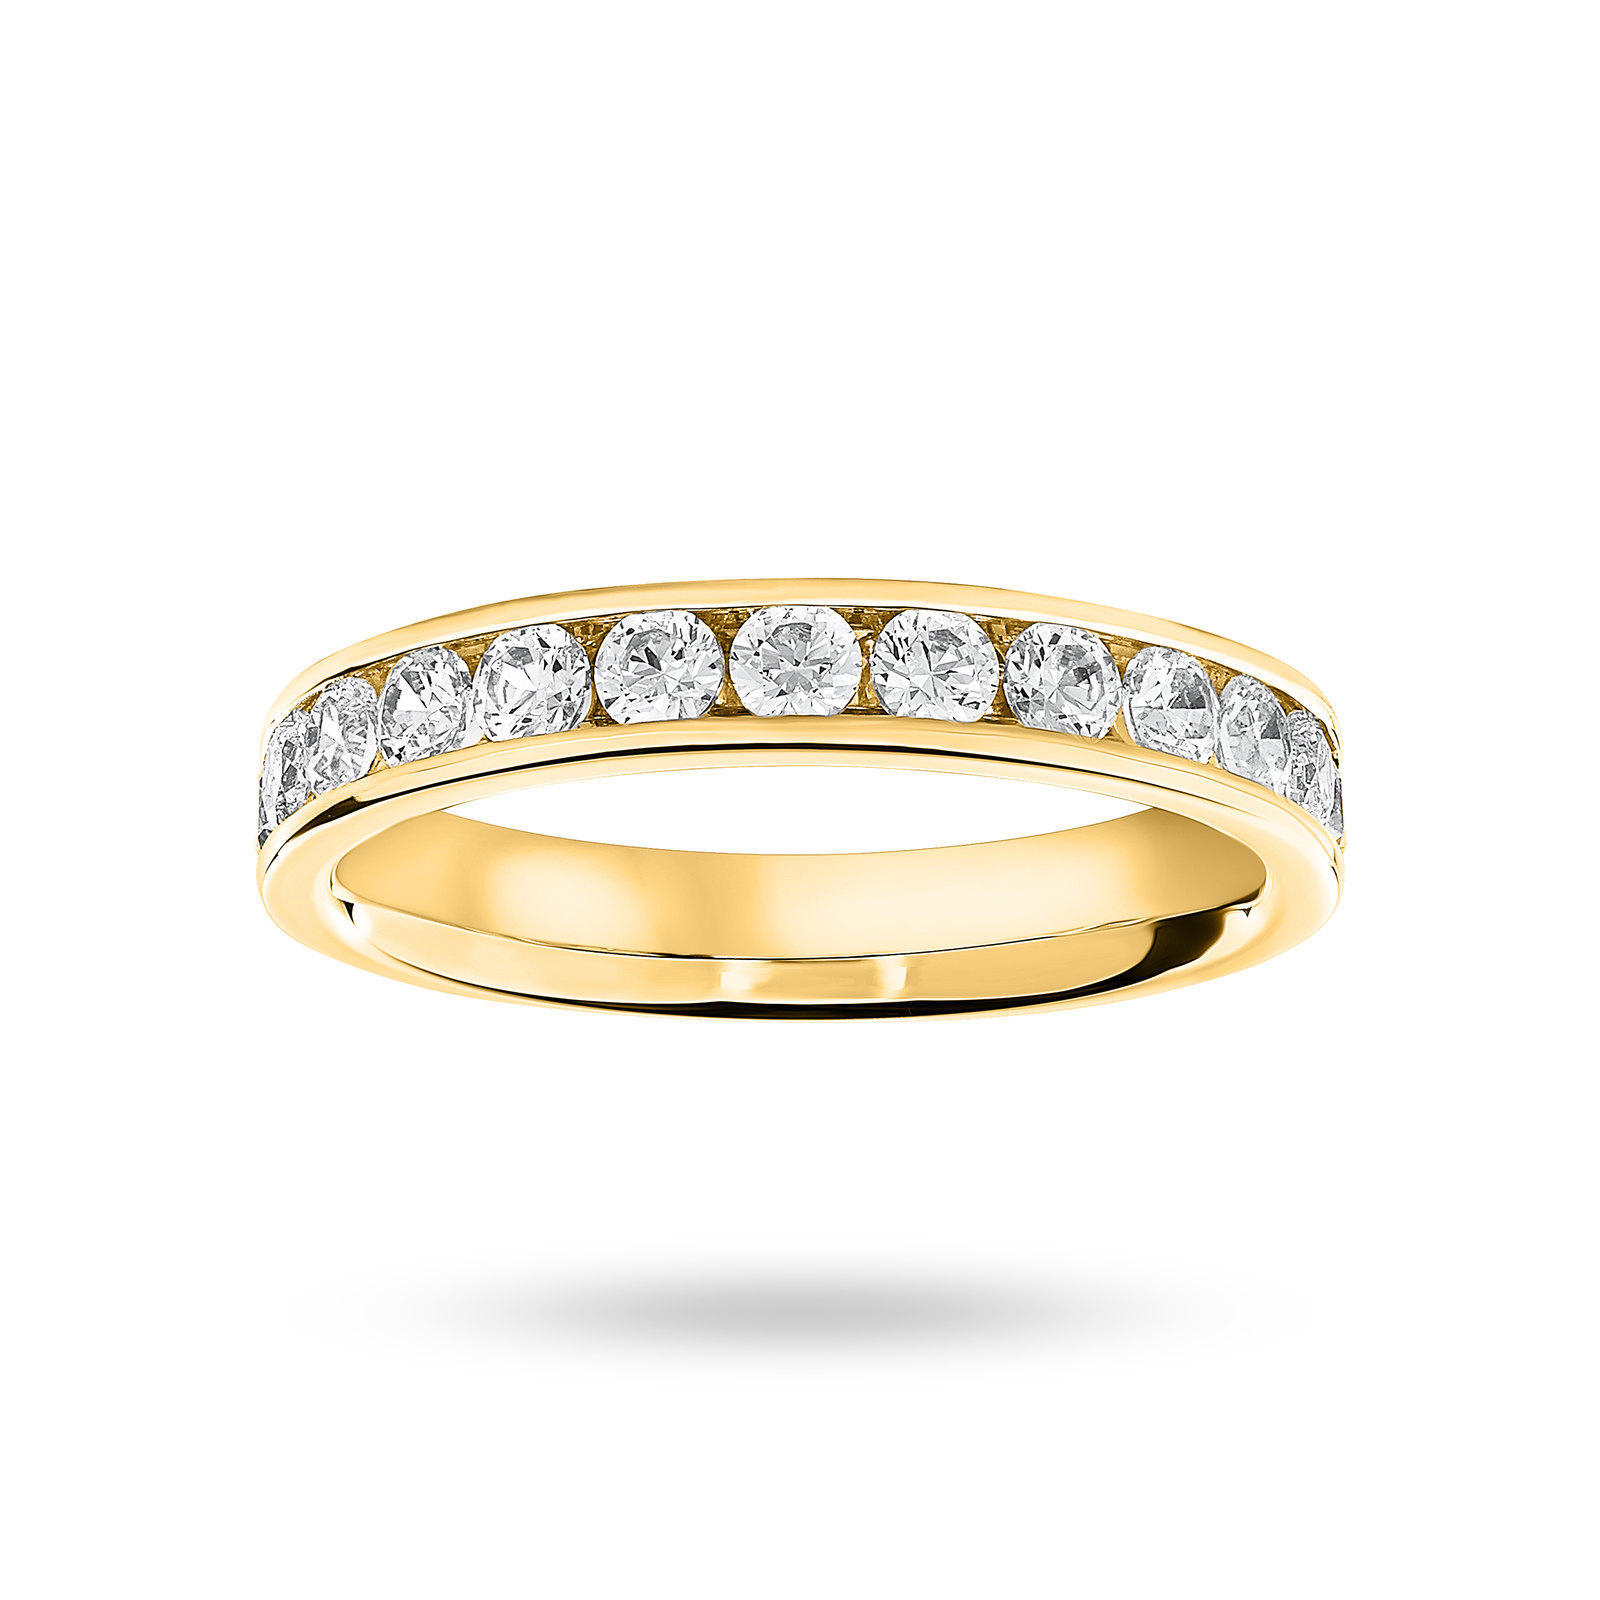 18 Carat Yellow Gold 0.75 Carat Brilliant Cut Half Eternity Ring